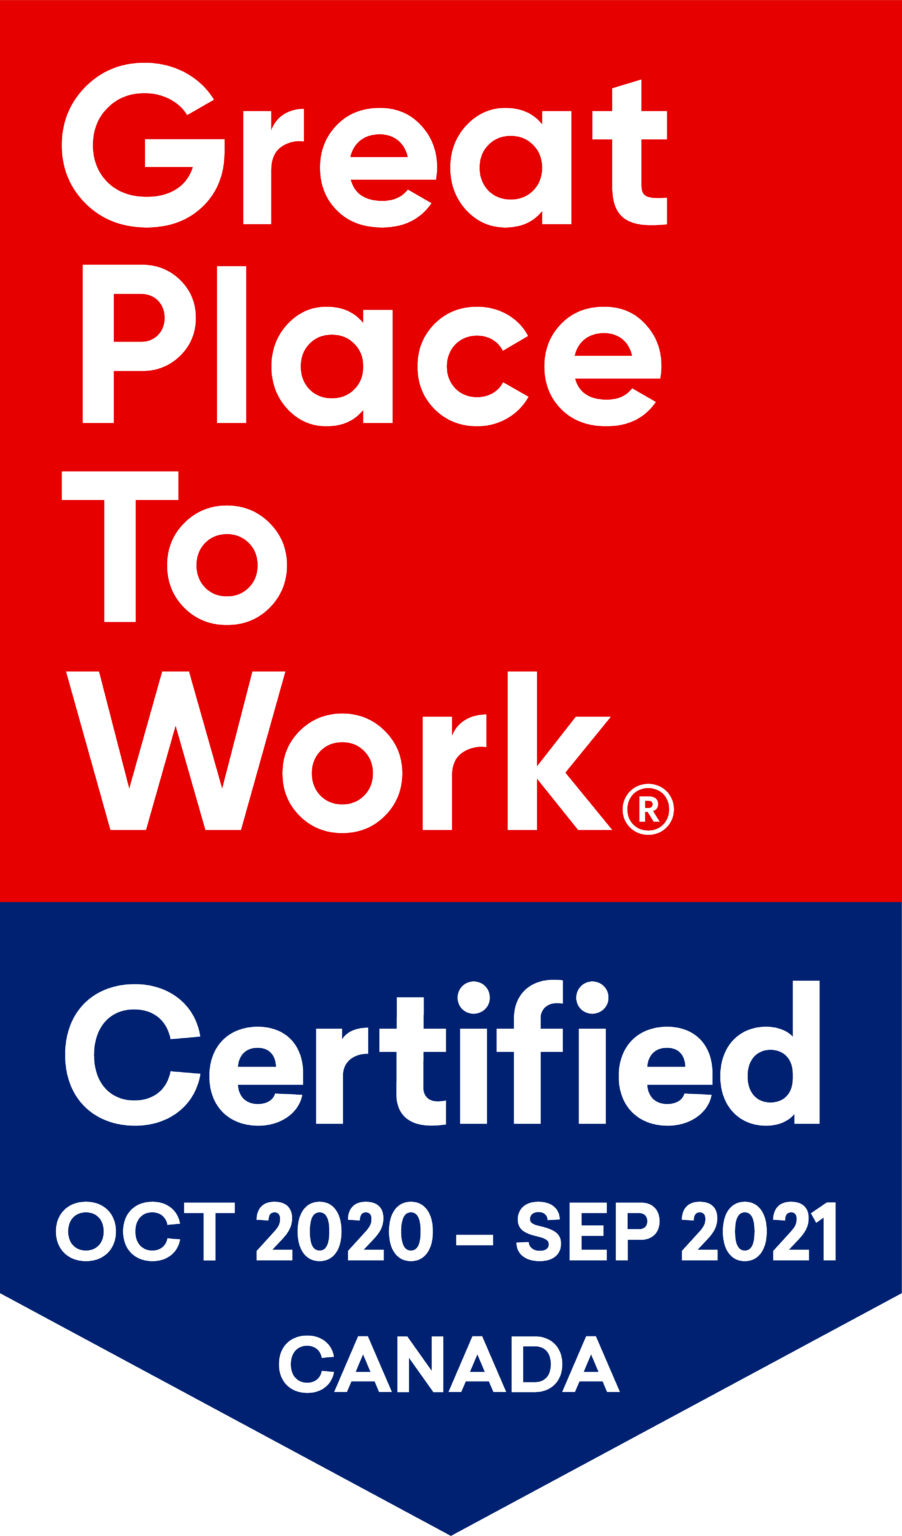 Great place to work Certified October 2020 - September 2021